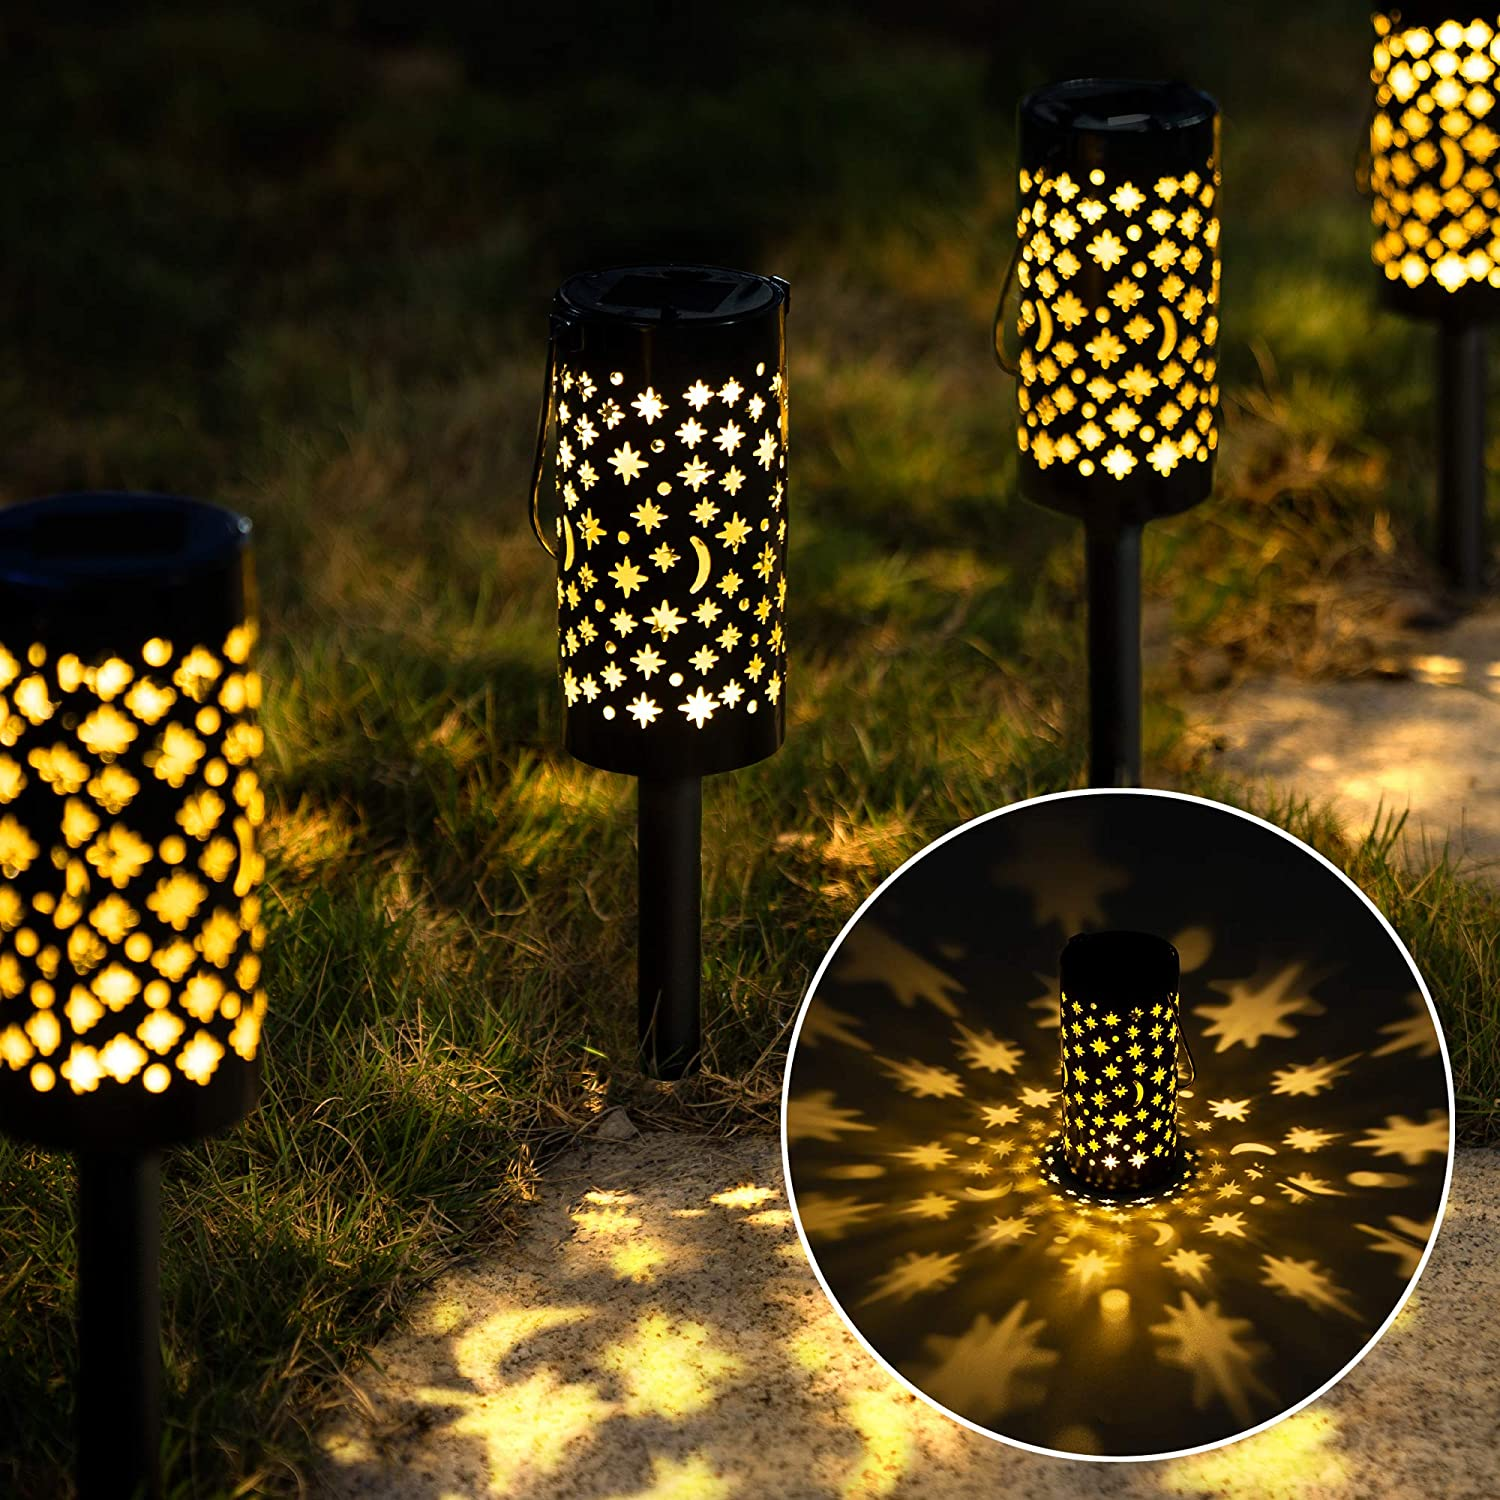 GIGALUMI Solar Pathway Lights, Garden Landscape Lights Solar Powered Waterproof, Hanging Solar Lights Decorative Star Moon Solar Lanterns Outdoor for Walkway, Garden, Patio, Lawn, Yard (6 Pack